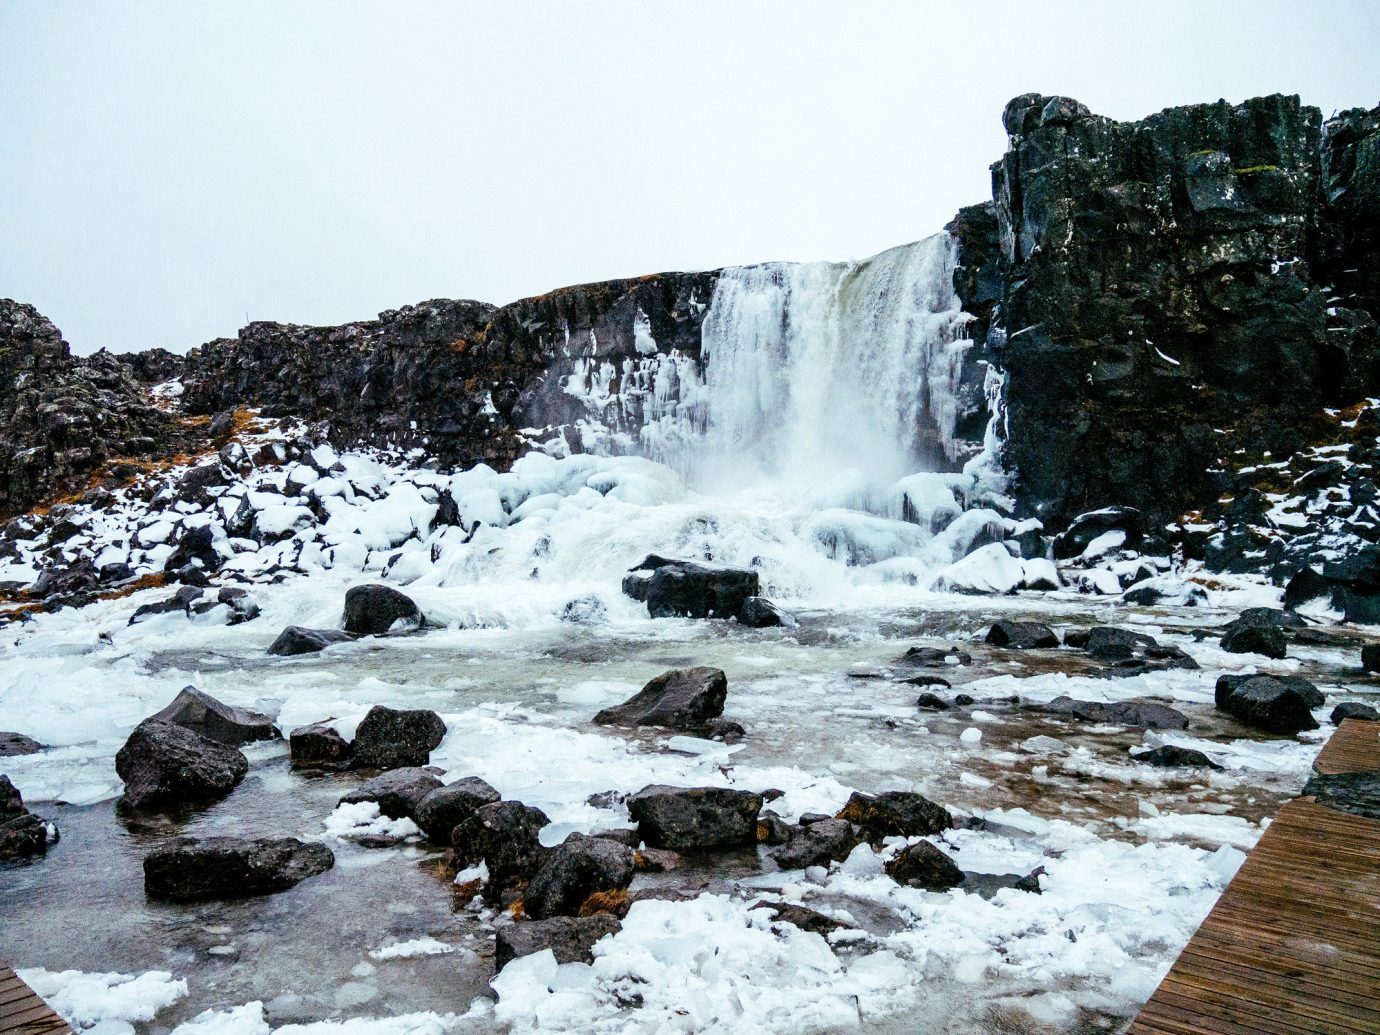 Iceland Offbeat Trip Ideas Nature outdoor Waterfall shore body of water water rock Coast Winter Sea weather Ocean wave snow wind wave season water feature River rapid landscape Beach stream material terrain